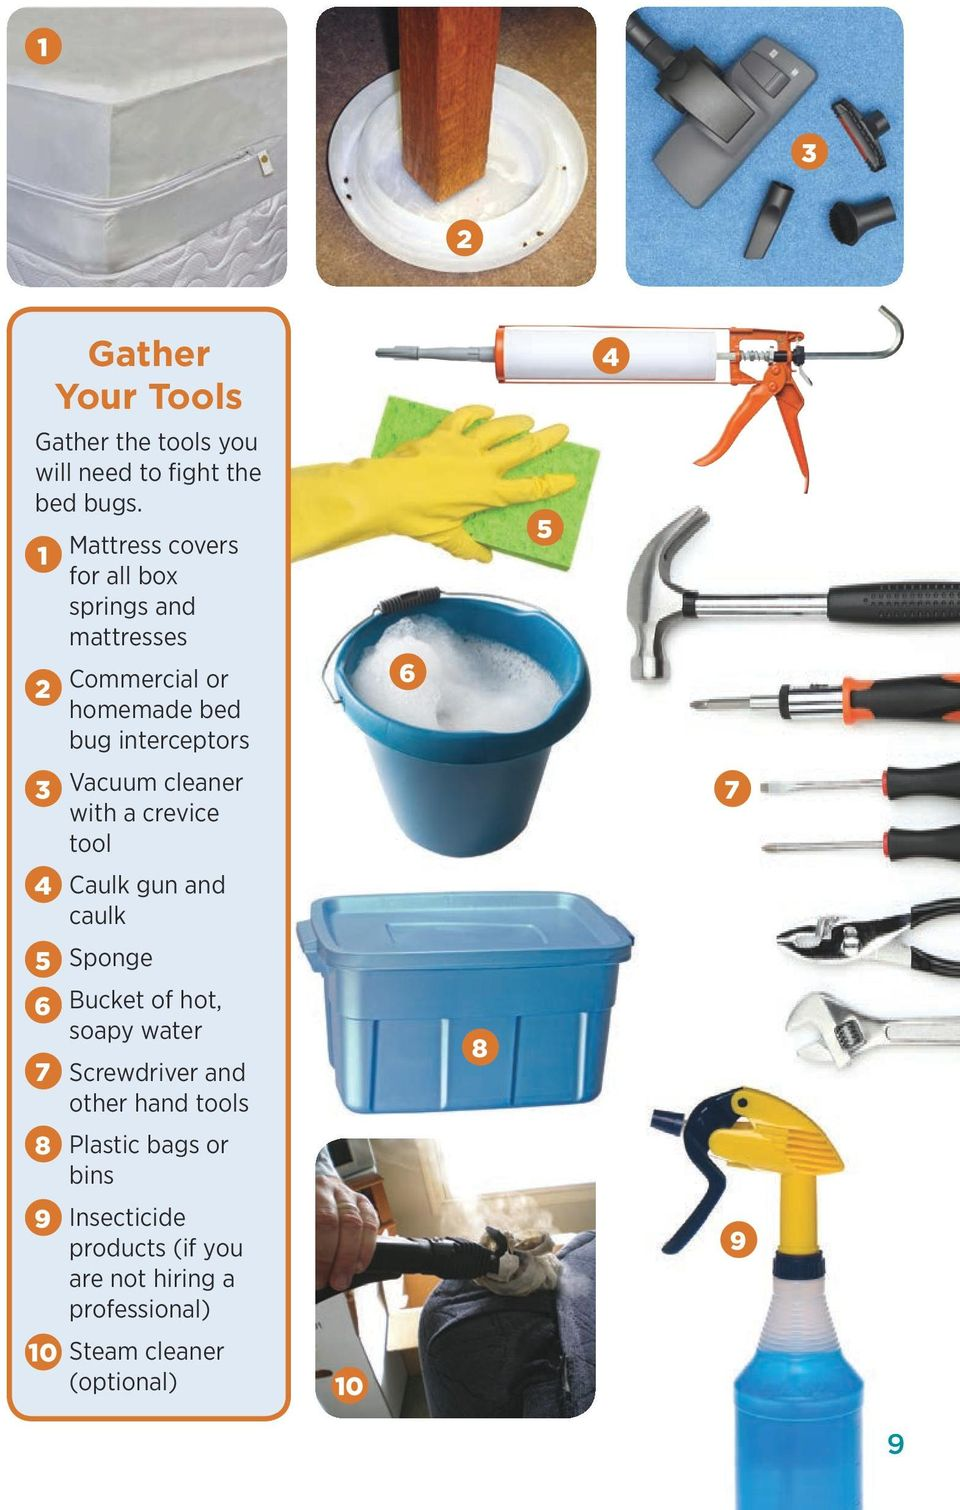 cleaner with a crevice tool 4 Caulk gun and caulk 5 Sponge 6 Bucket of hot, soapy water 7 Screwdriver and